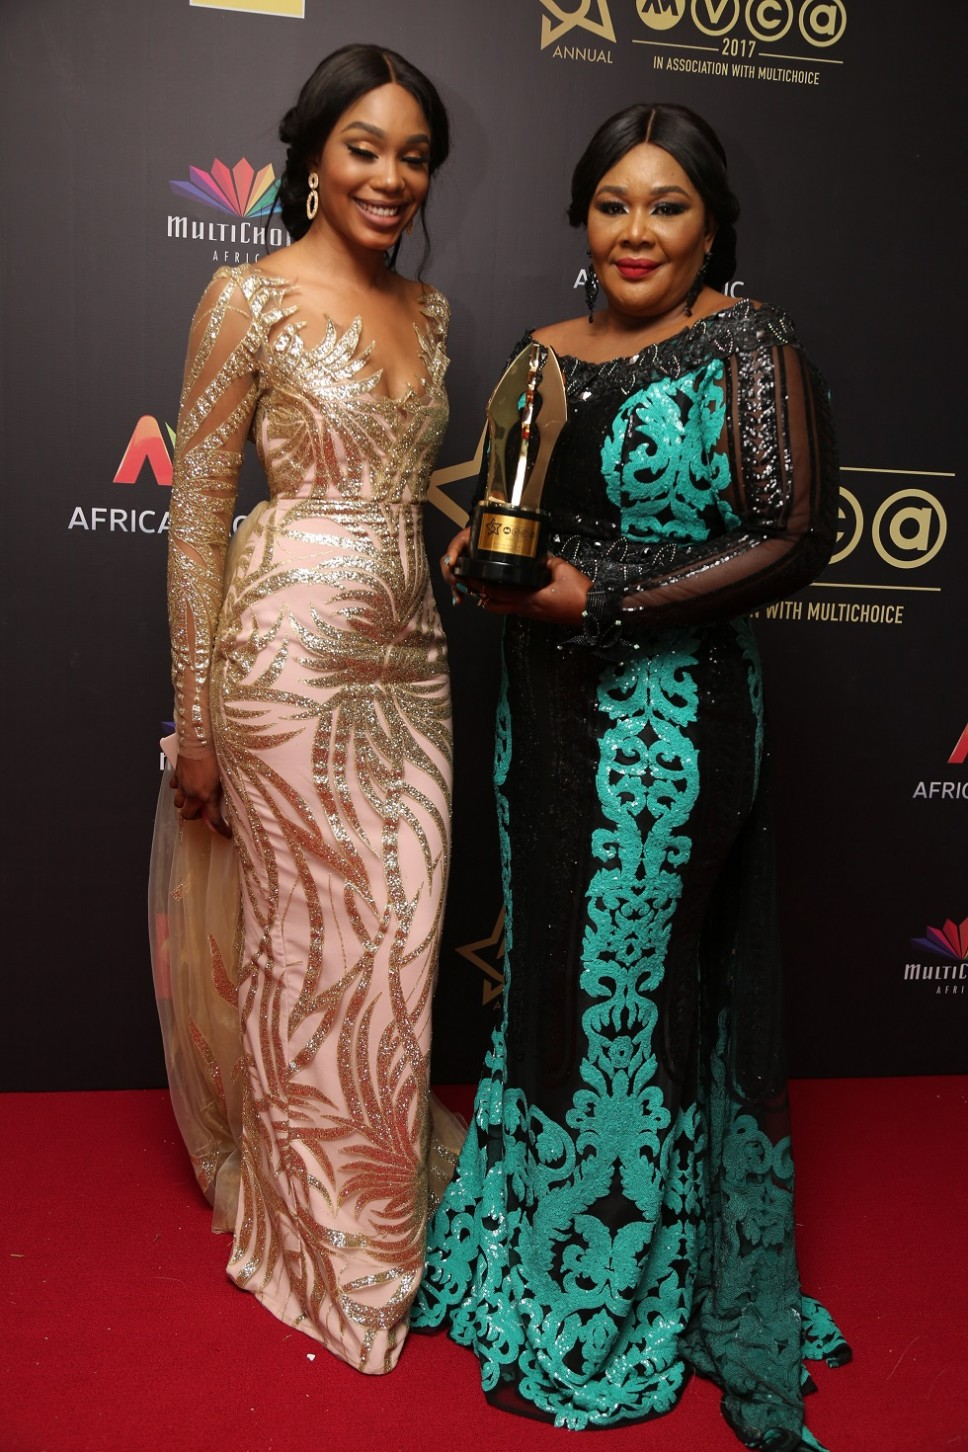 AMVCA winners pose with their trophies